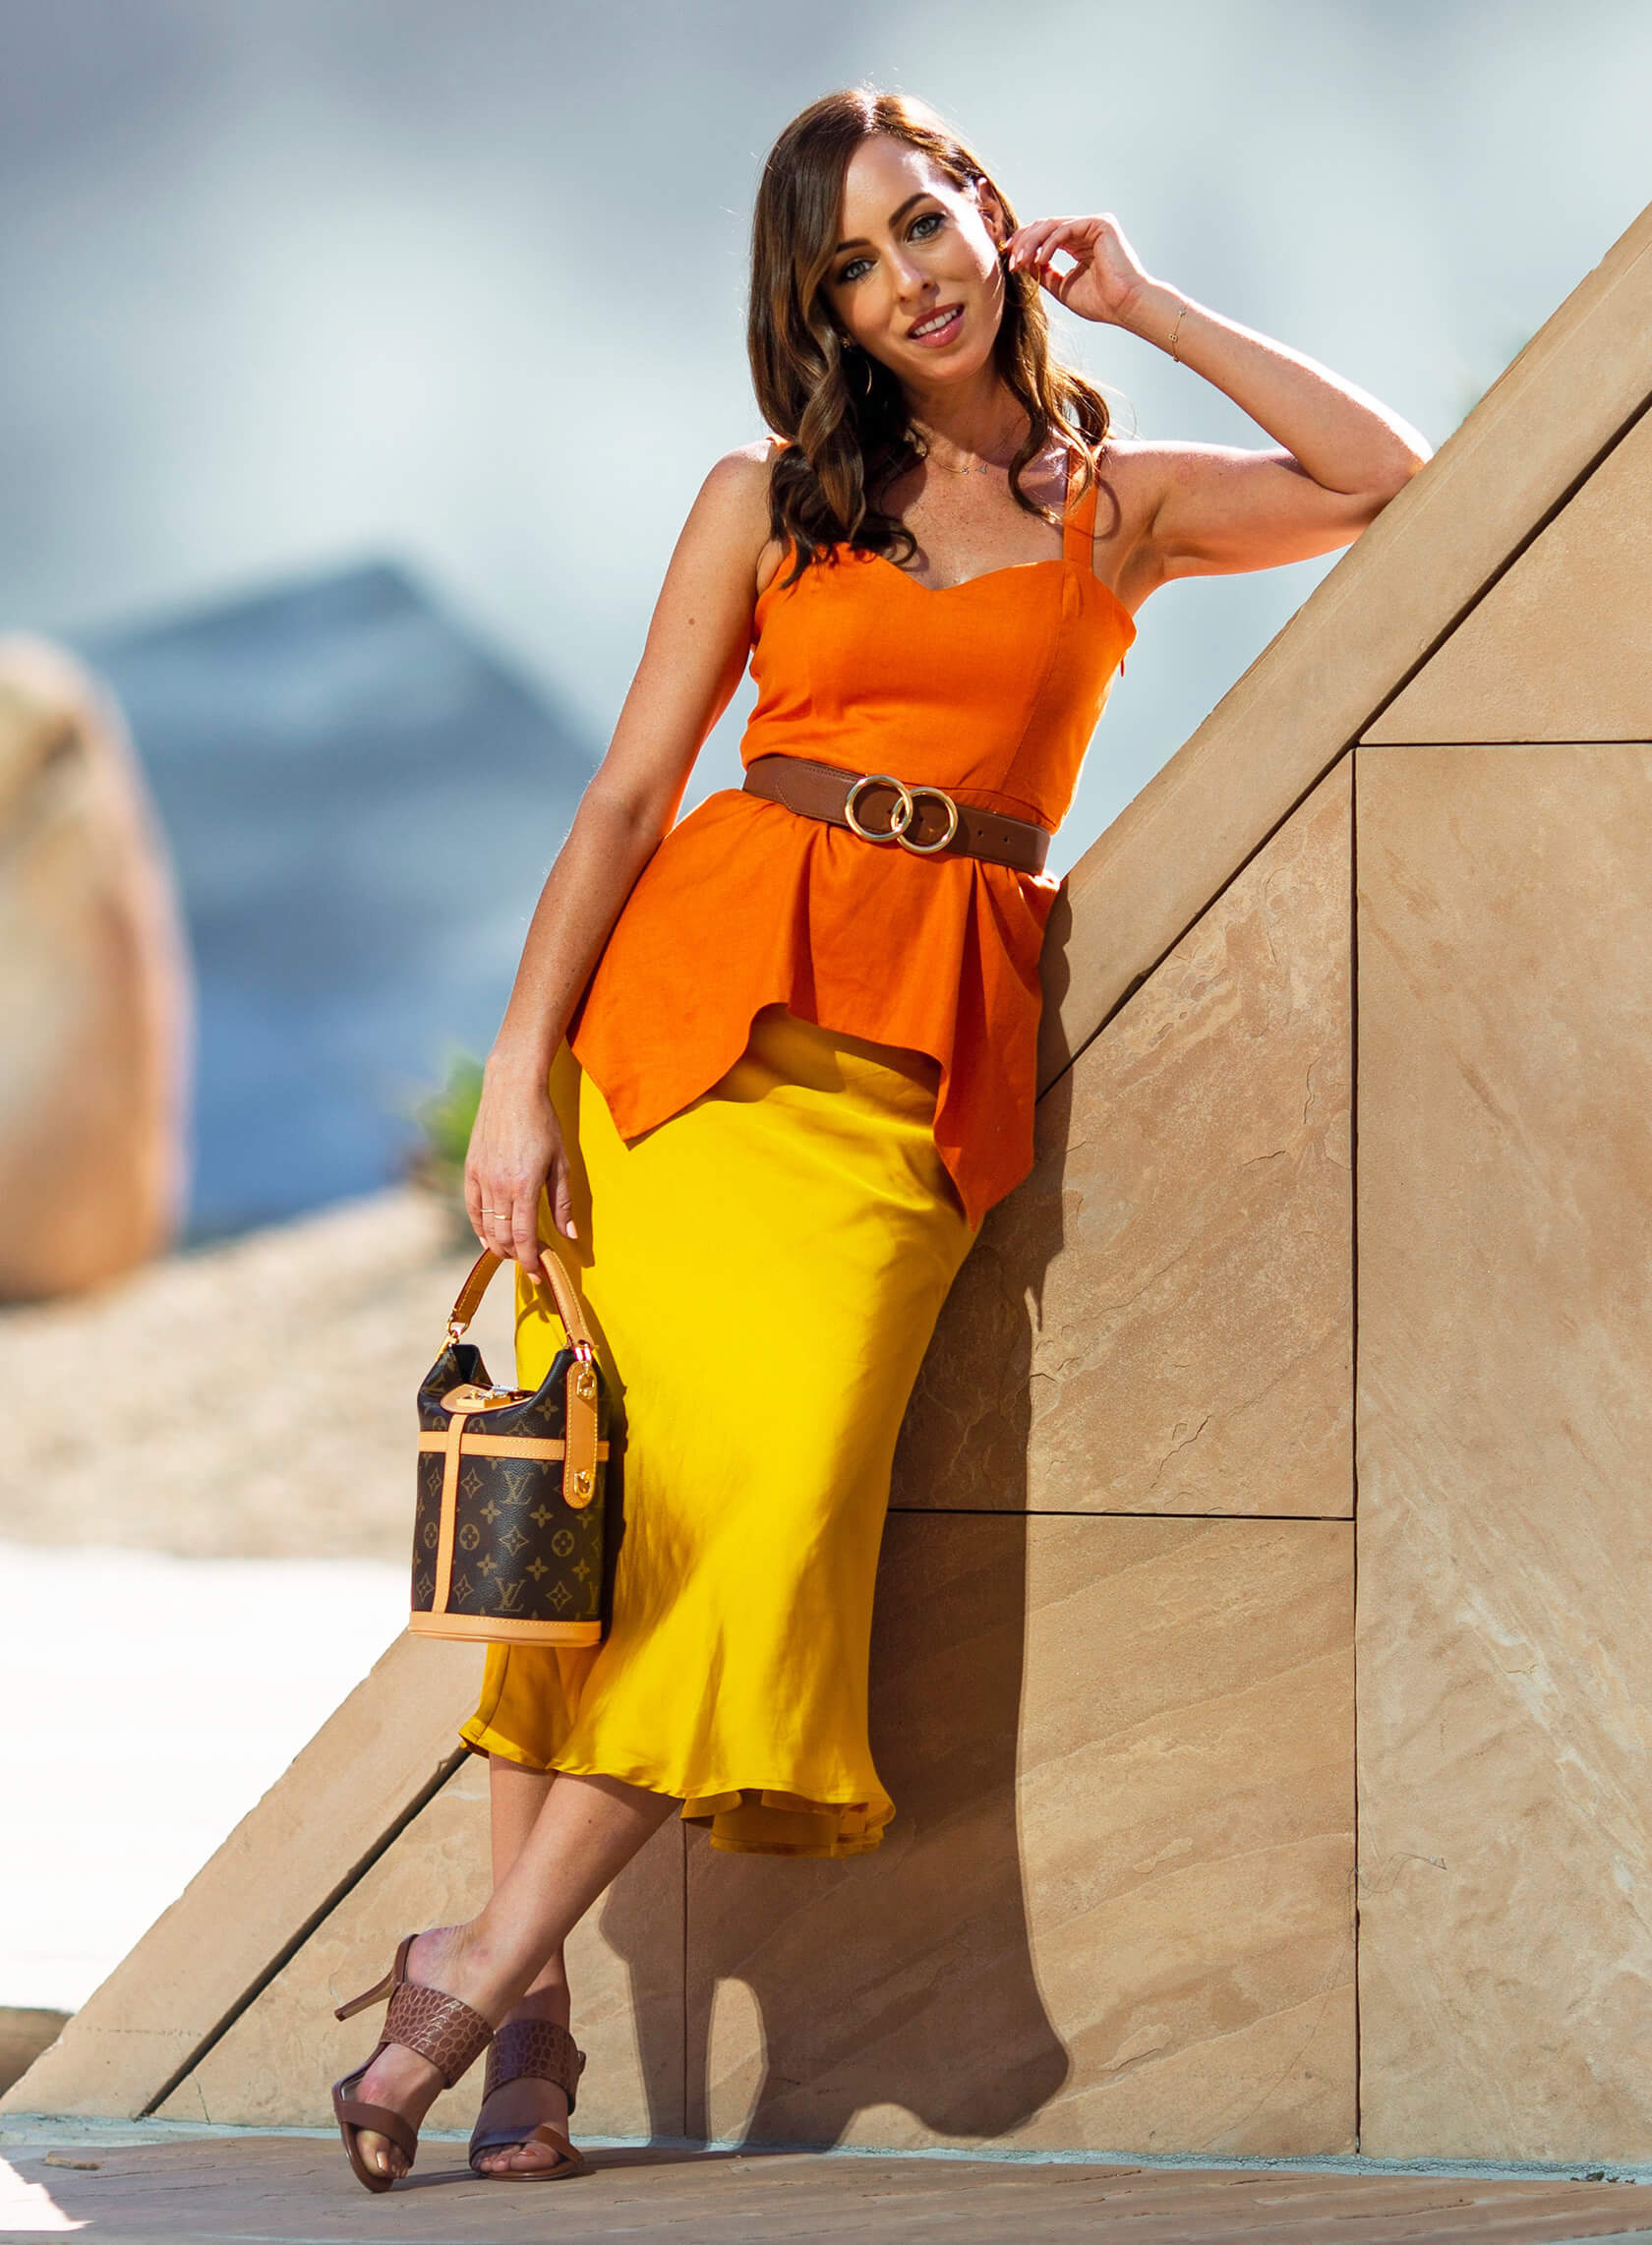 Sydne Style shows how to wear orange and yellow for colorful fall outfit ideas